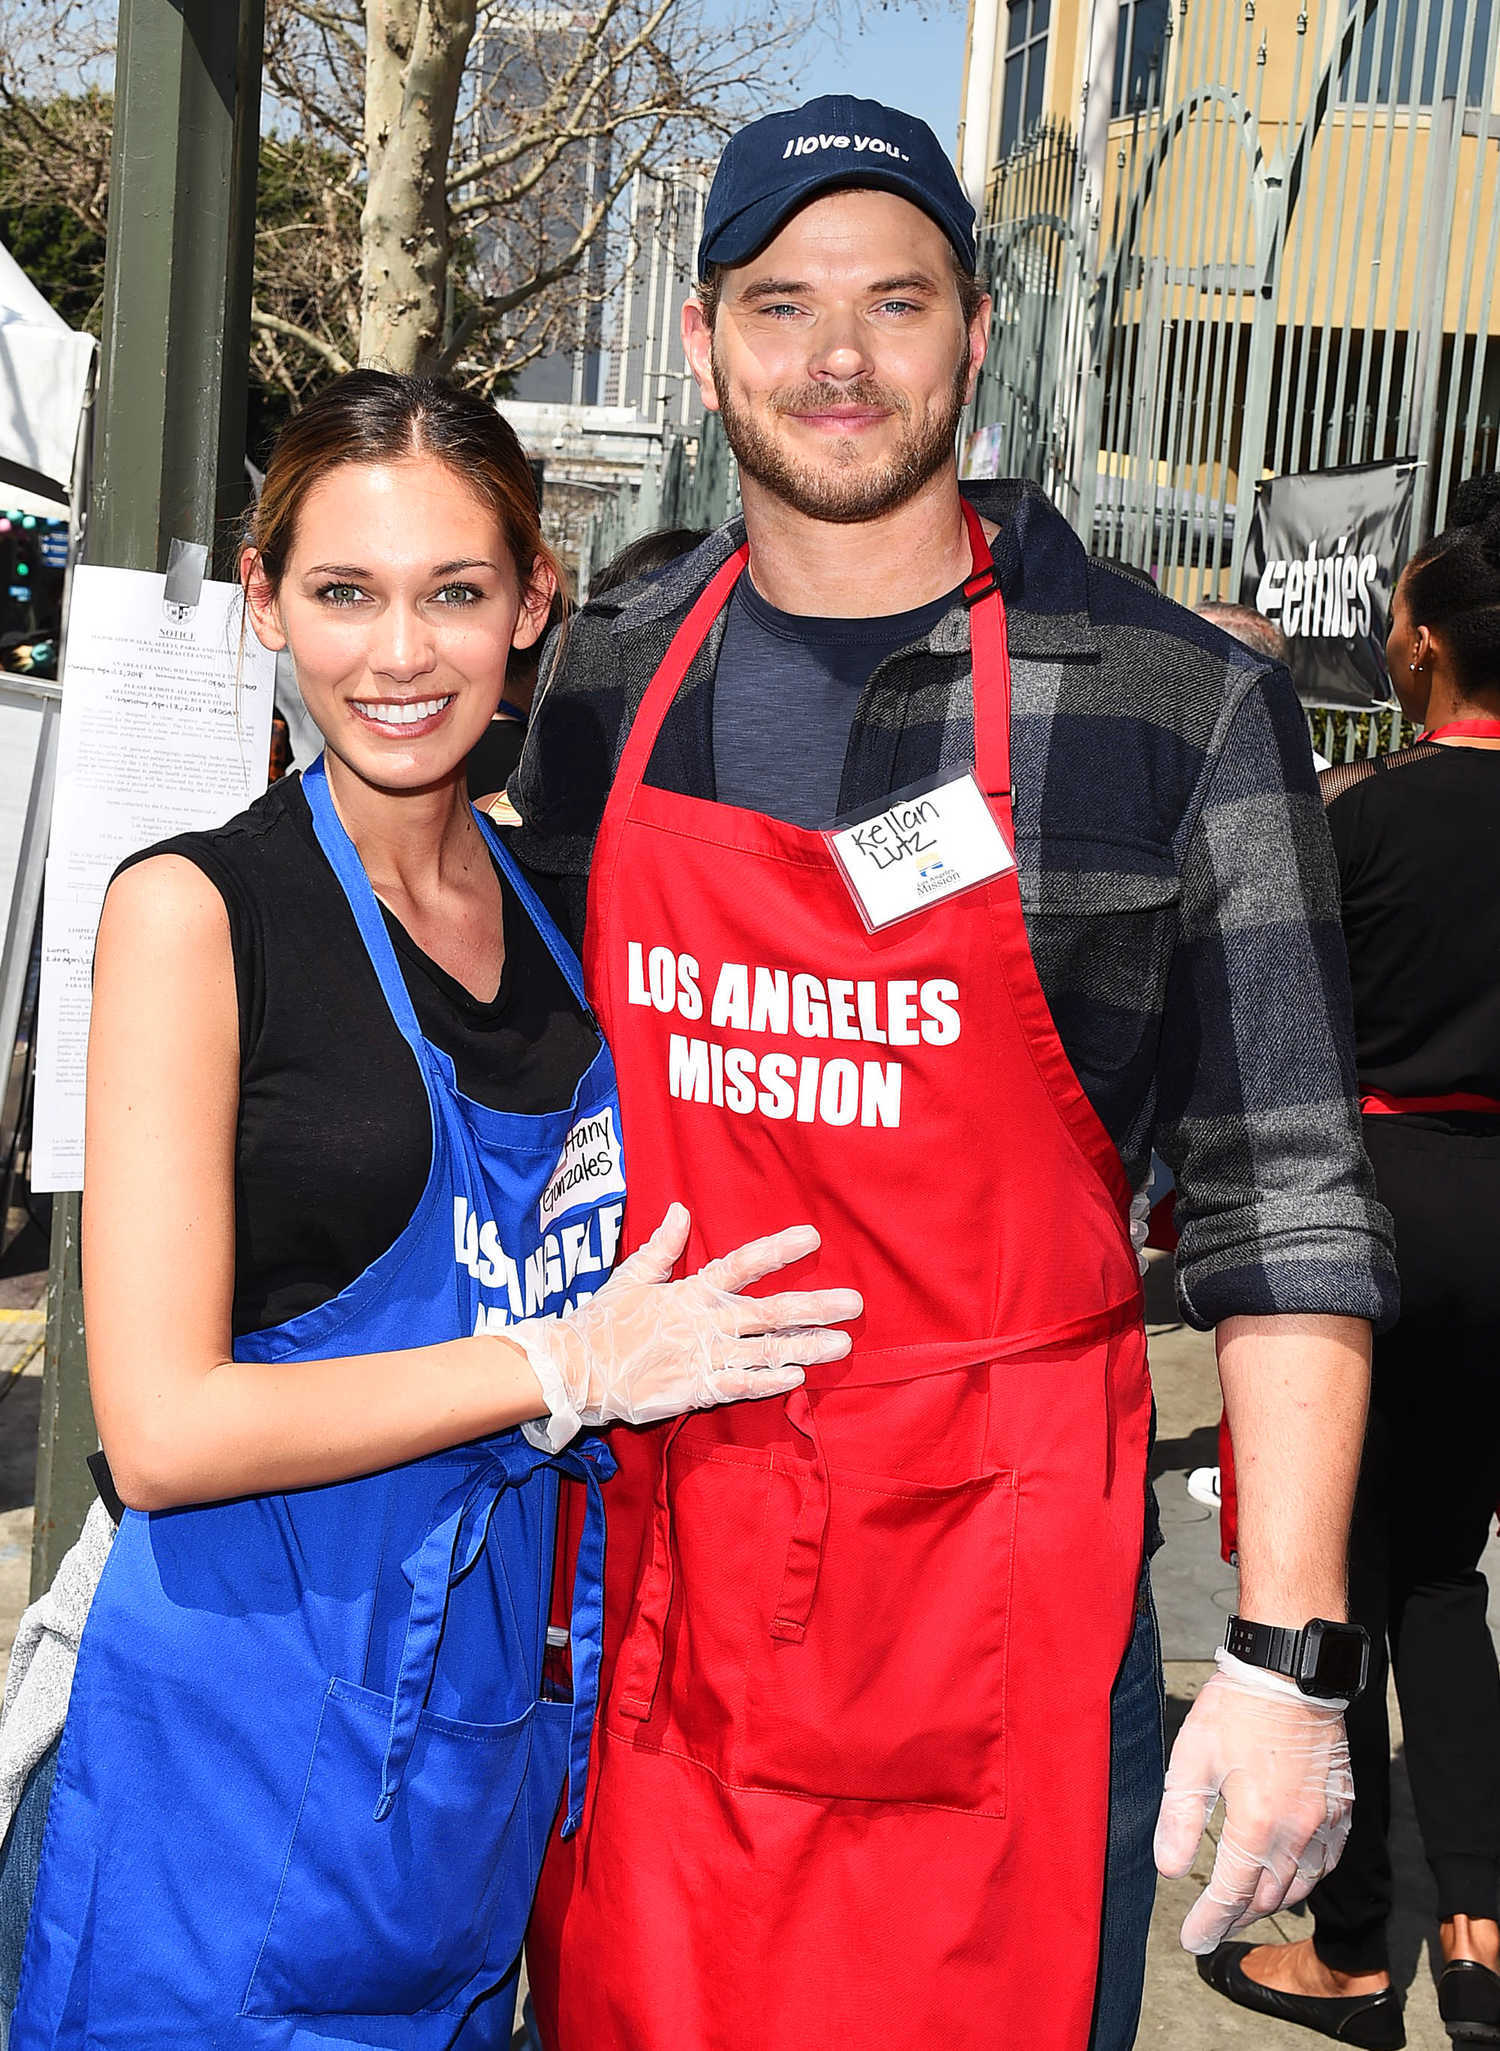 Volunteering in L.A. - Charity Events In Los Angeles